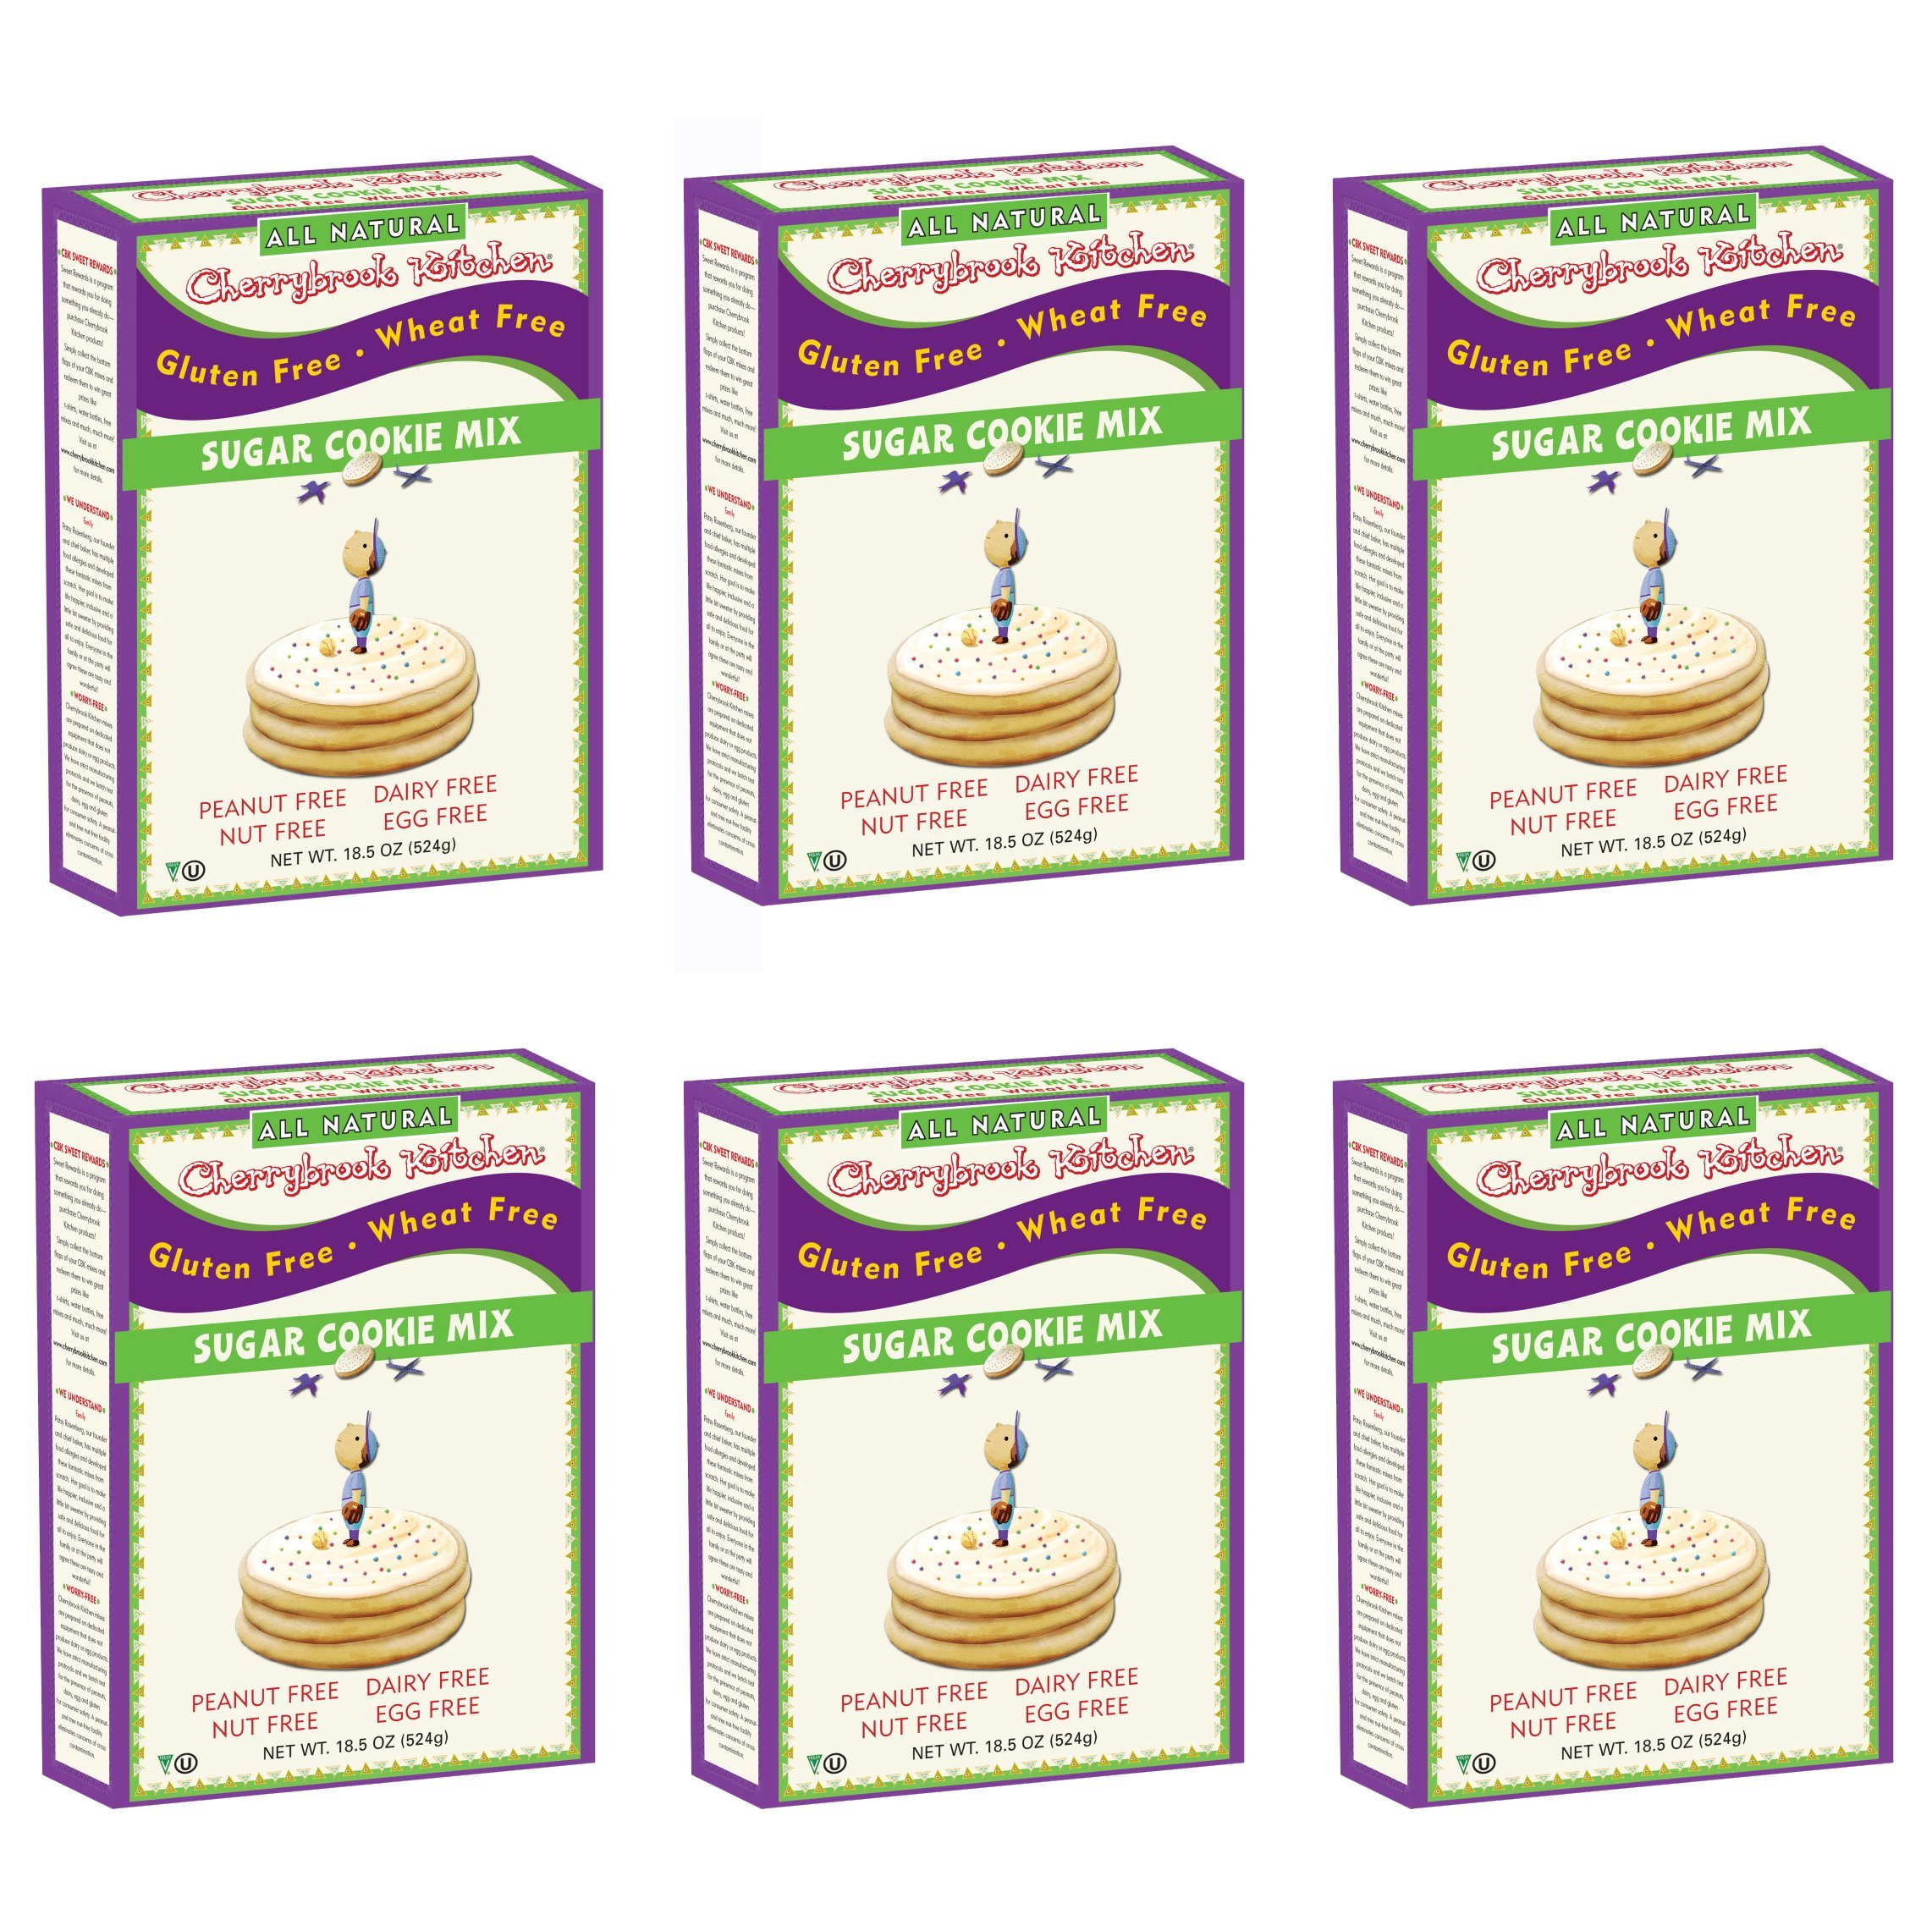 Cherrybrook Kitchen 20158 Gluten Free, Sugar Cookie Mix, 13-Ounce Boxes (Pack of 6)